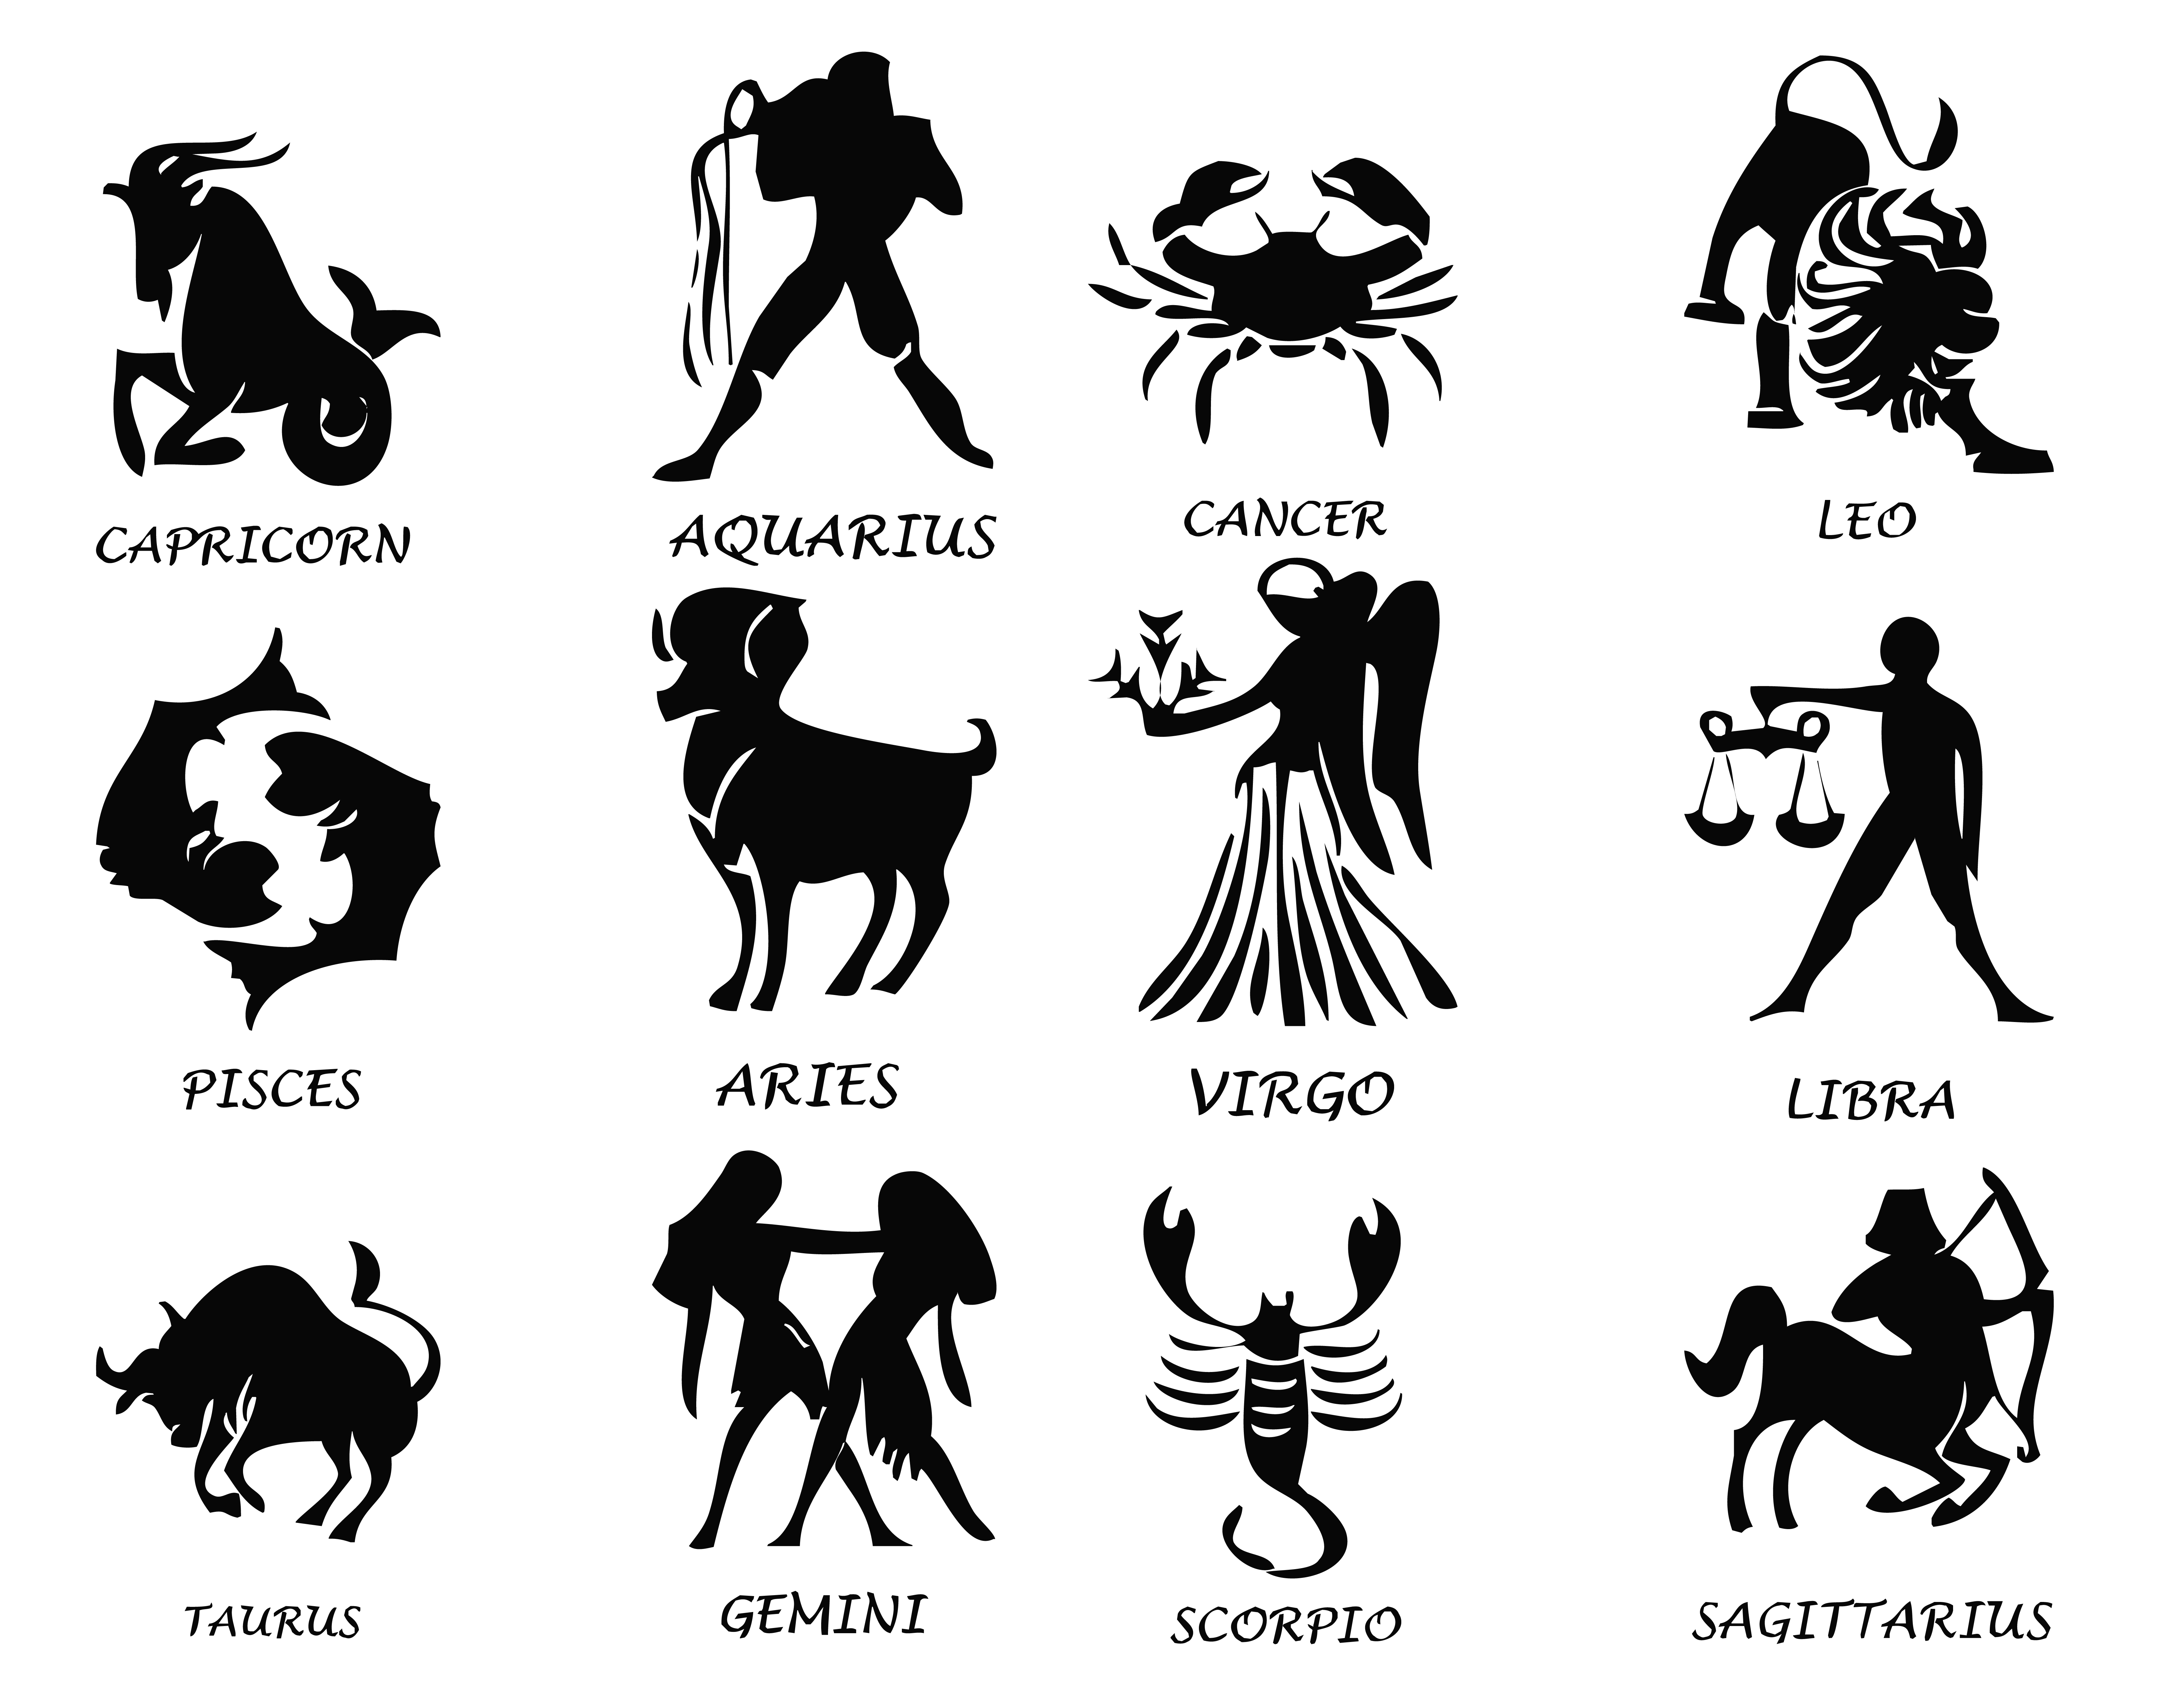 Transparent Zodiac Signs Set Png Image Gallery Yopriceville High Quality Images And Transparent P Lion Illustration Zodiac Signs Symbols Zodiac Star Signs